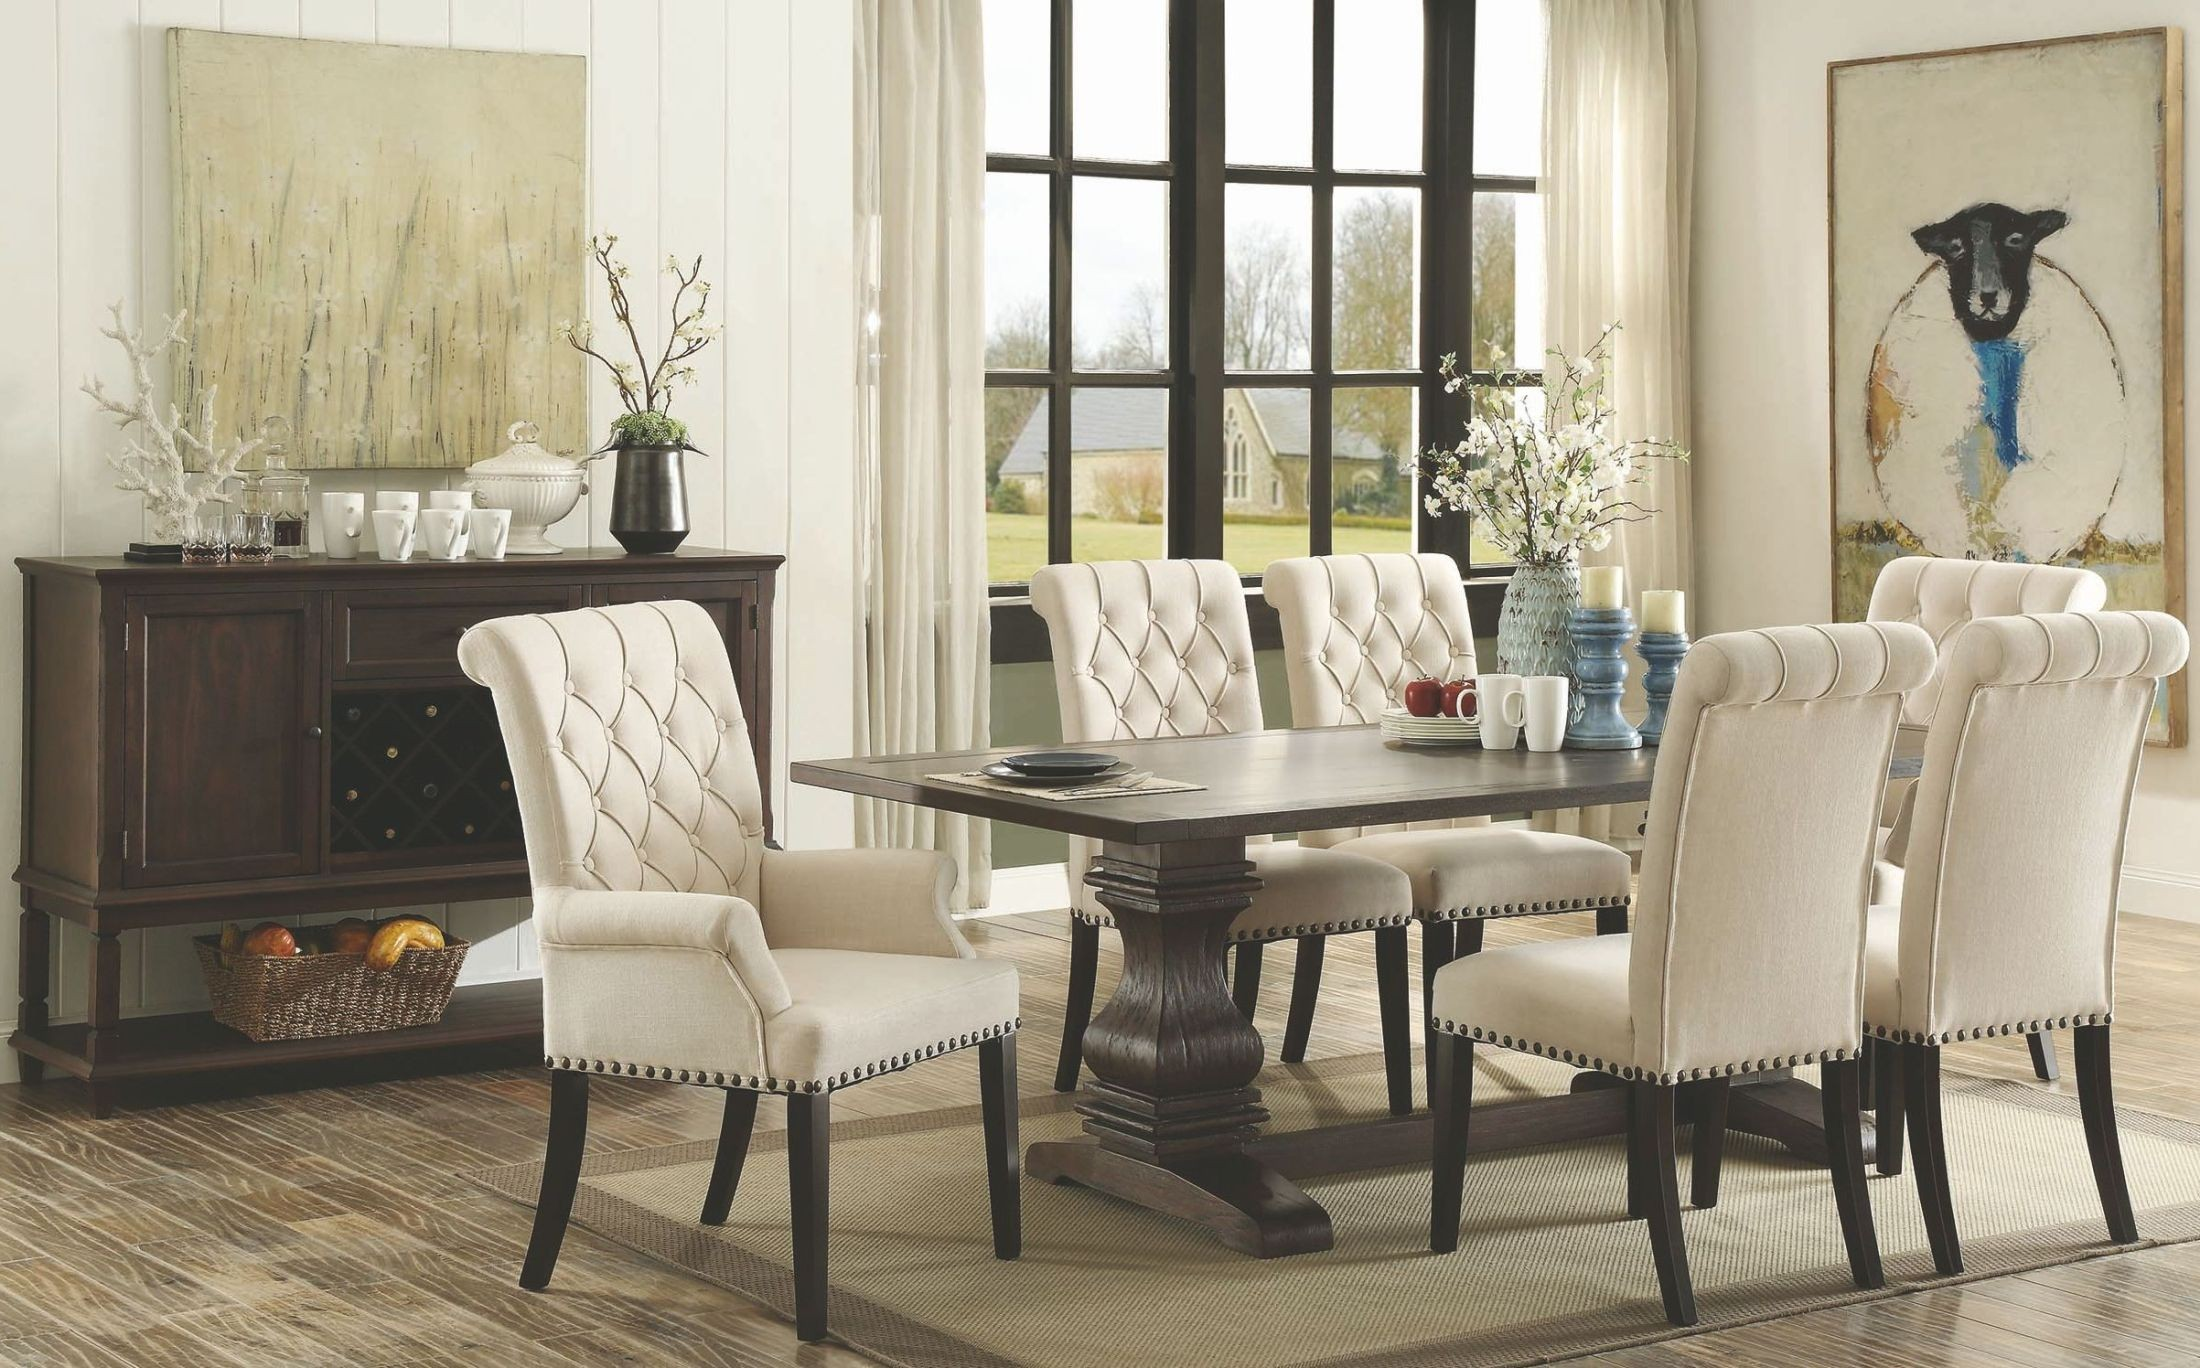 espresso table and chairs dutch design chair uk parkins rustic rectangular dining room set from